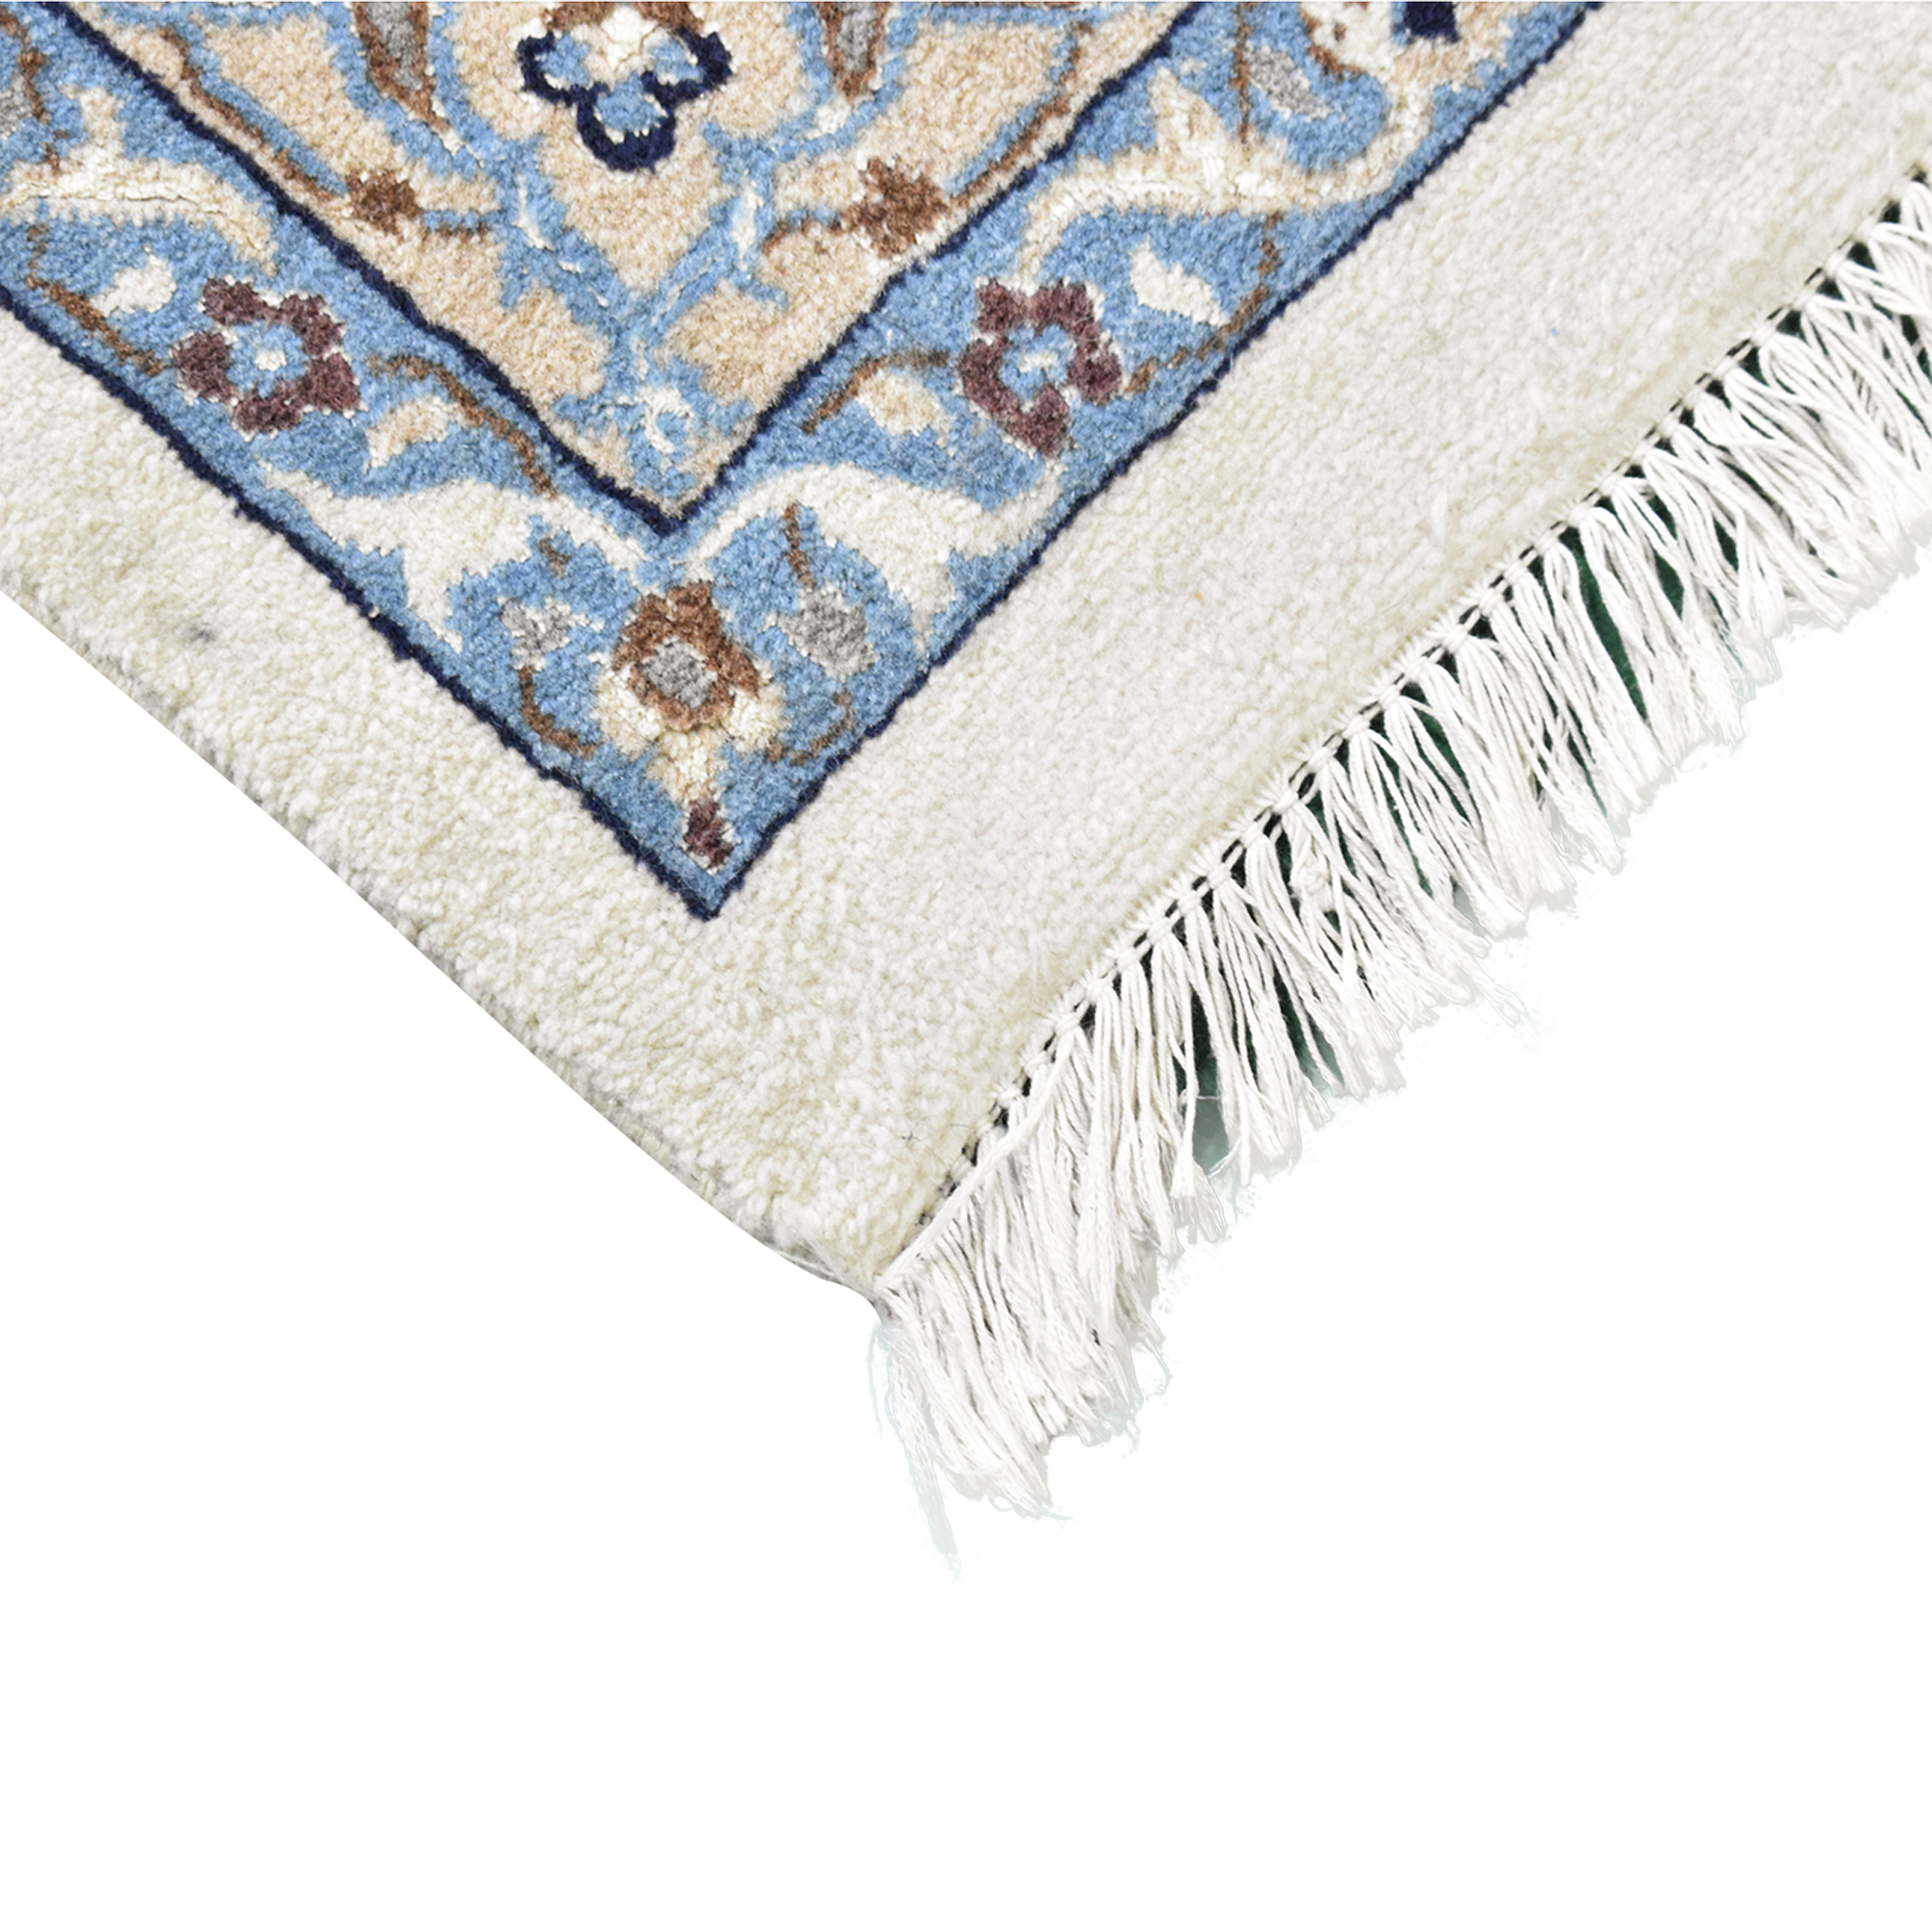 Traditional Patterned Area Rug